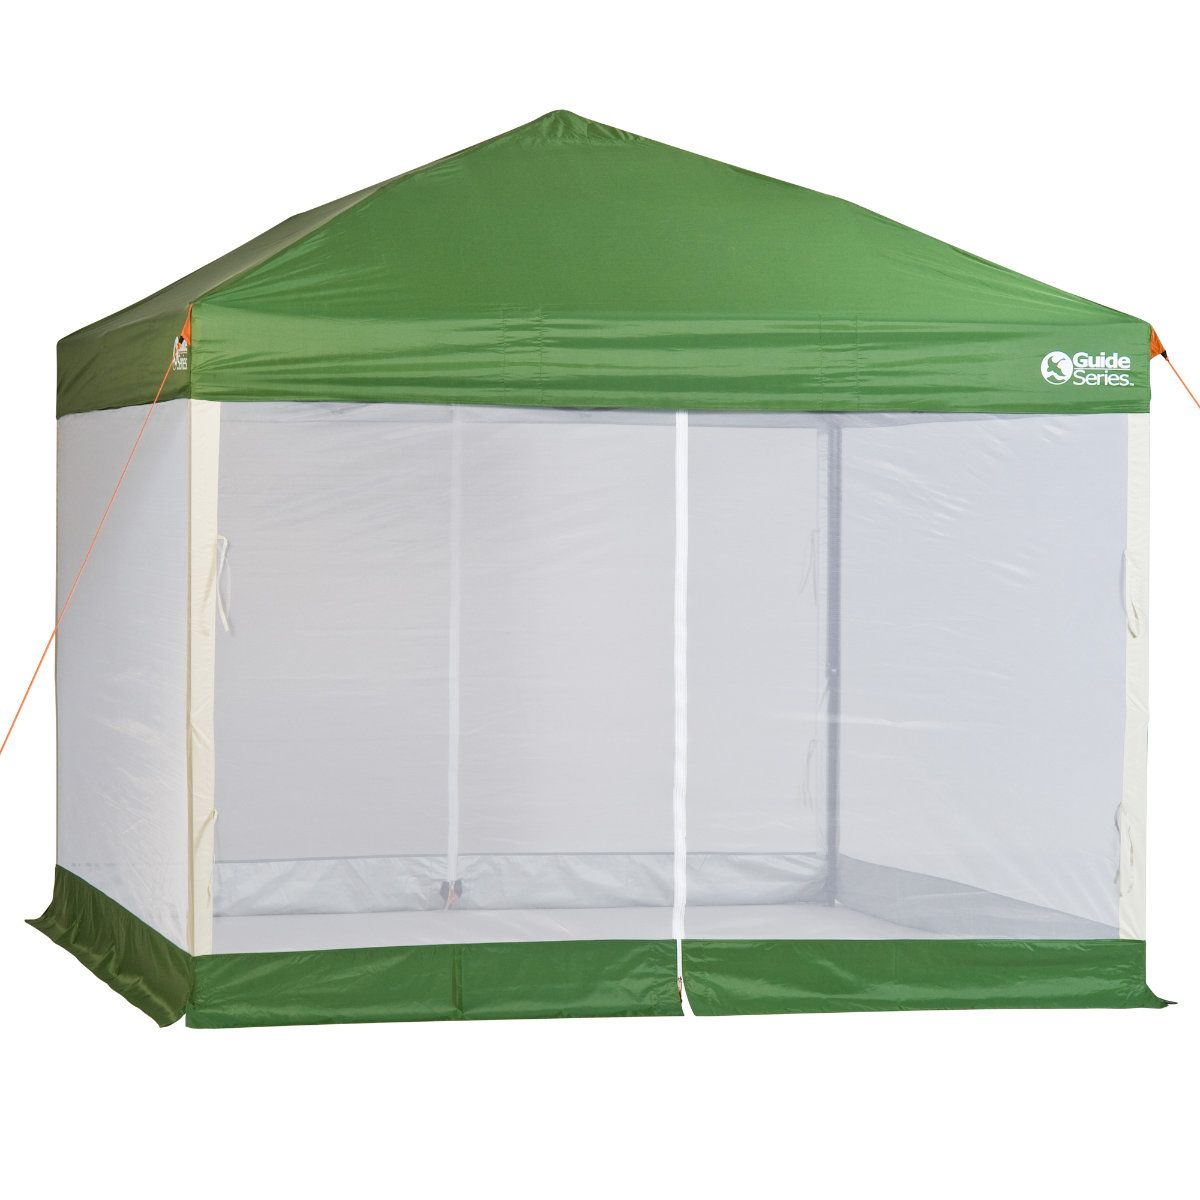 Gander mountain combo canopy 10x10 shelter for sale online | ebay.